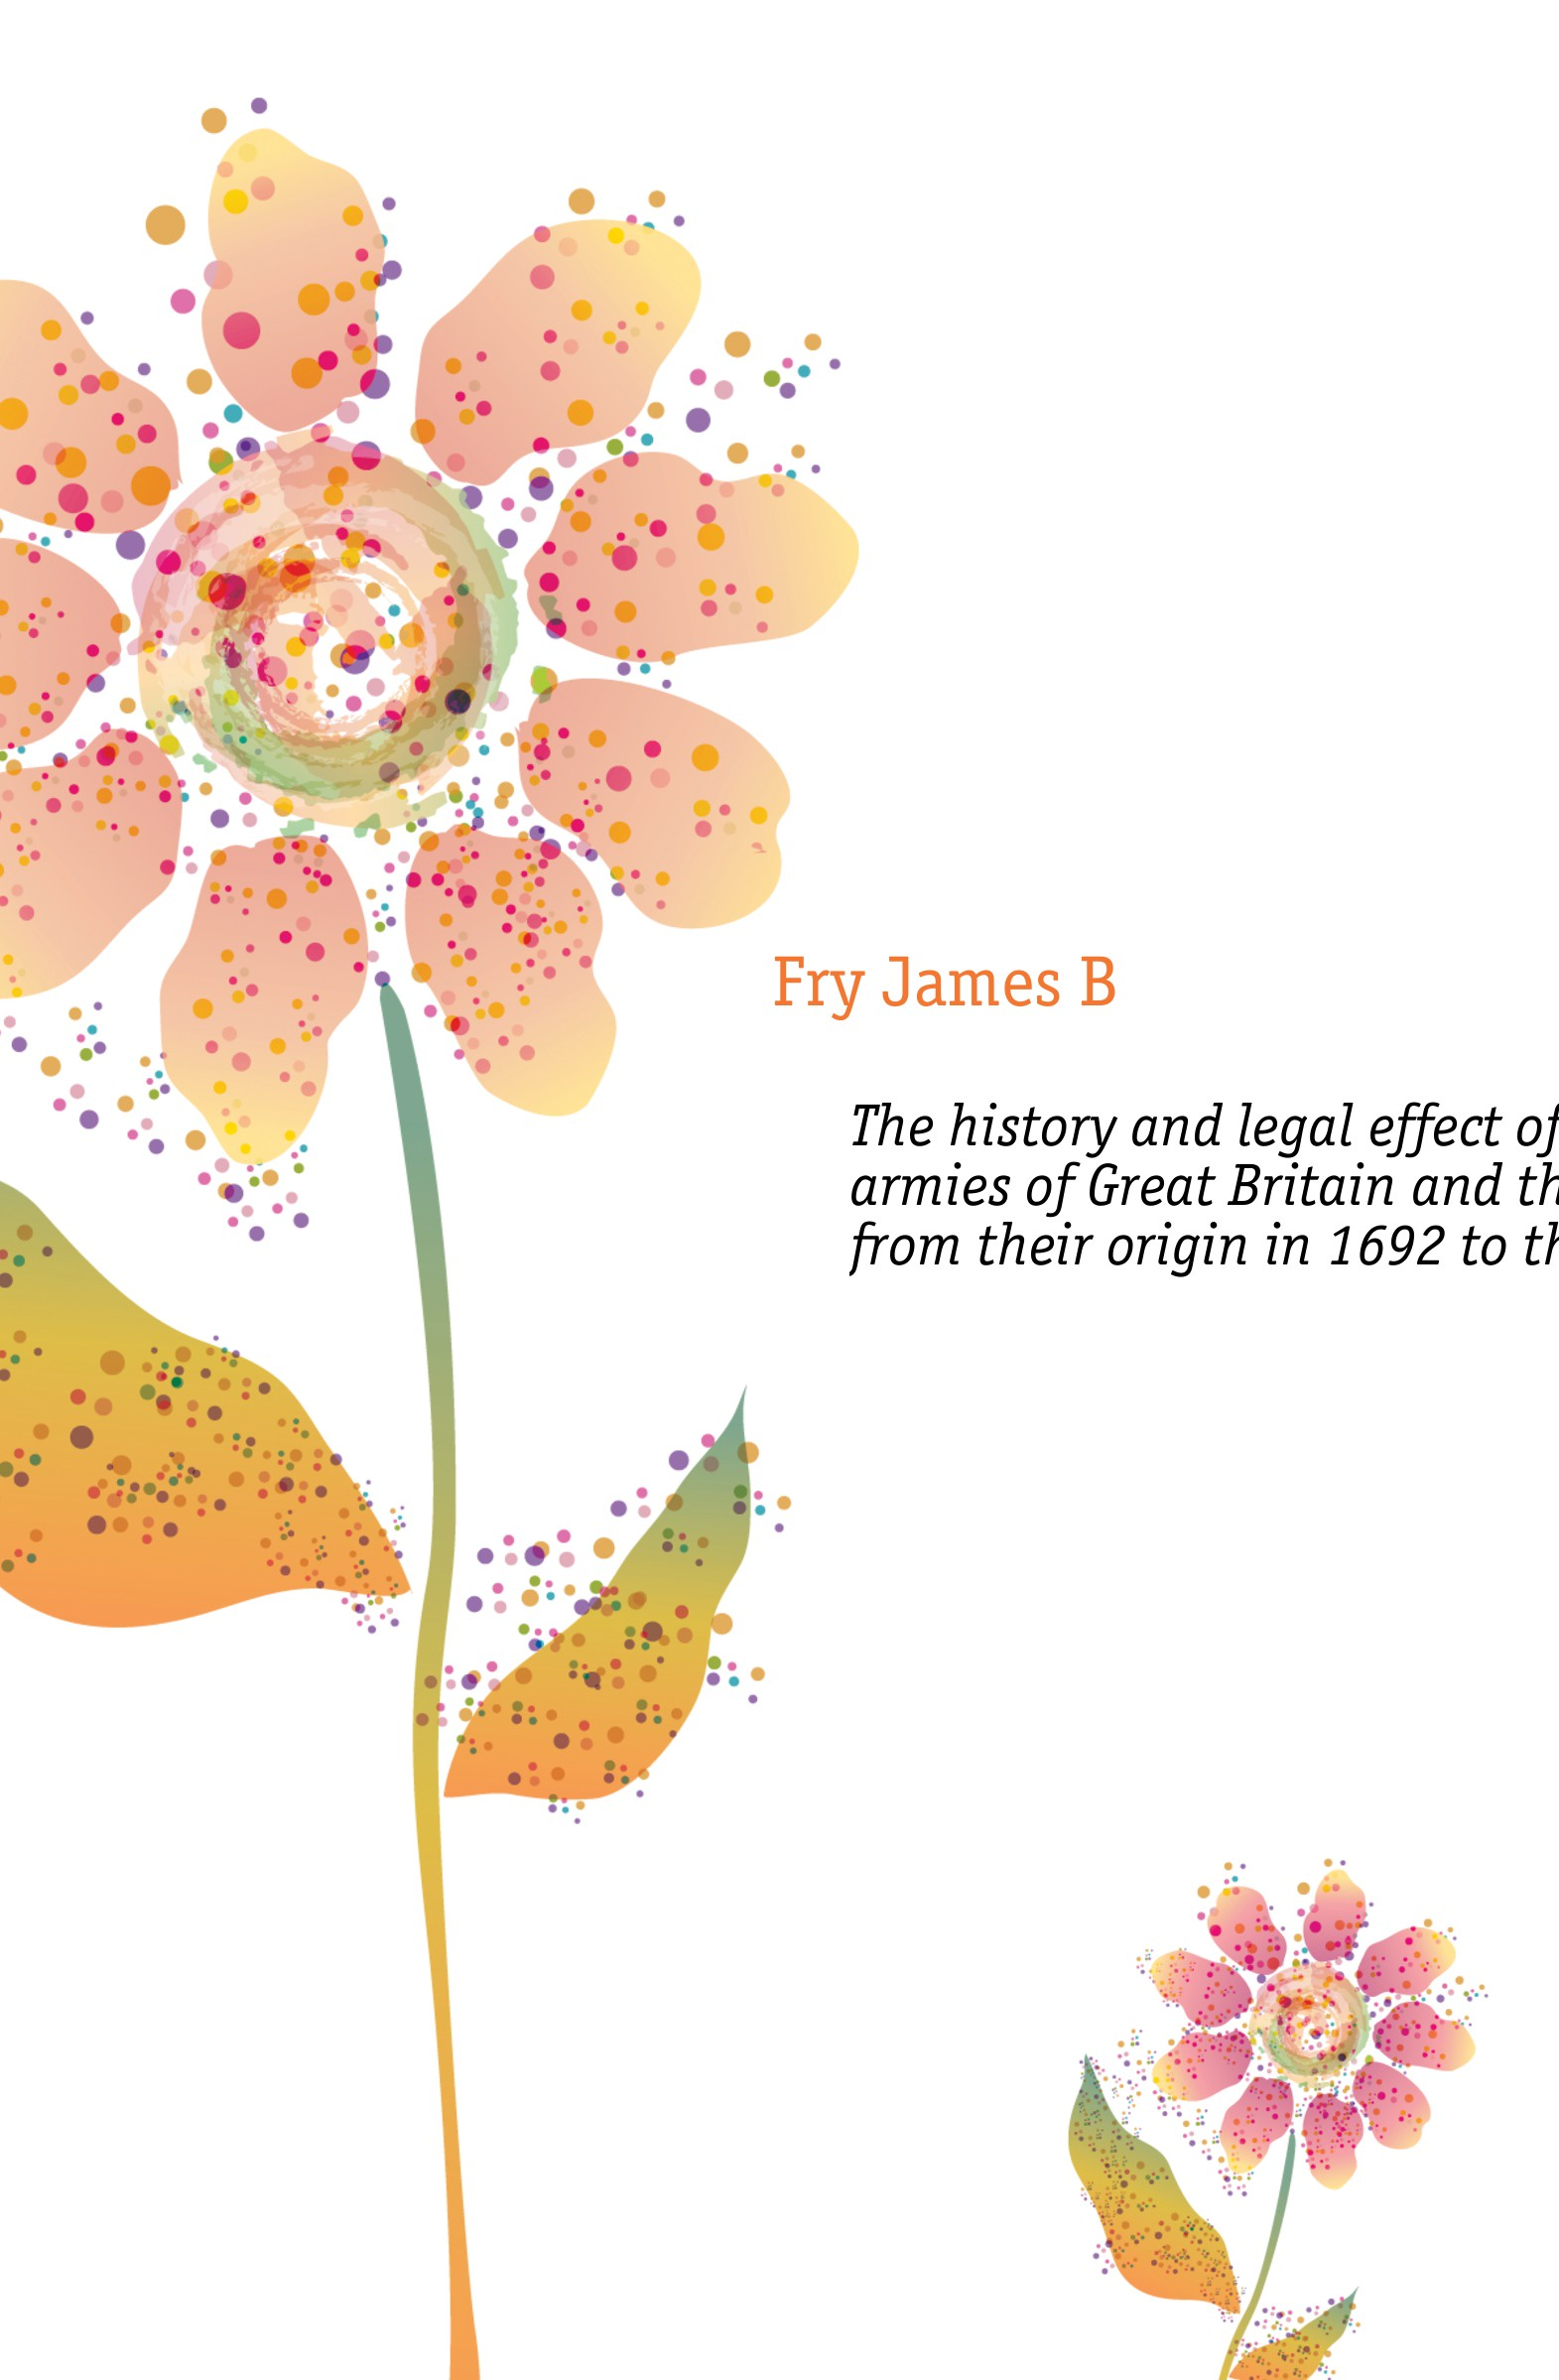 Fry James B. The history and legal effect of brevets in the armies of Great Britain and the United States, from their origin in 1692 to the present time william abbatt a history of the united states and its people from their earliest records to the present time volume 6